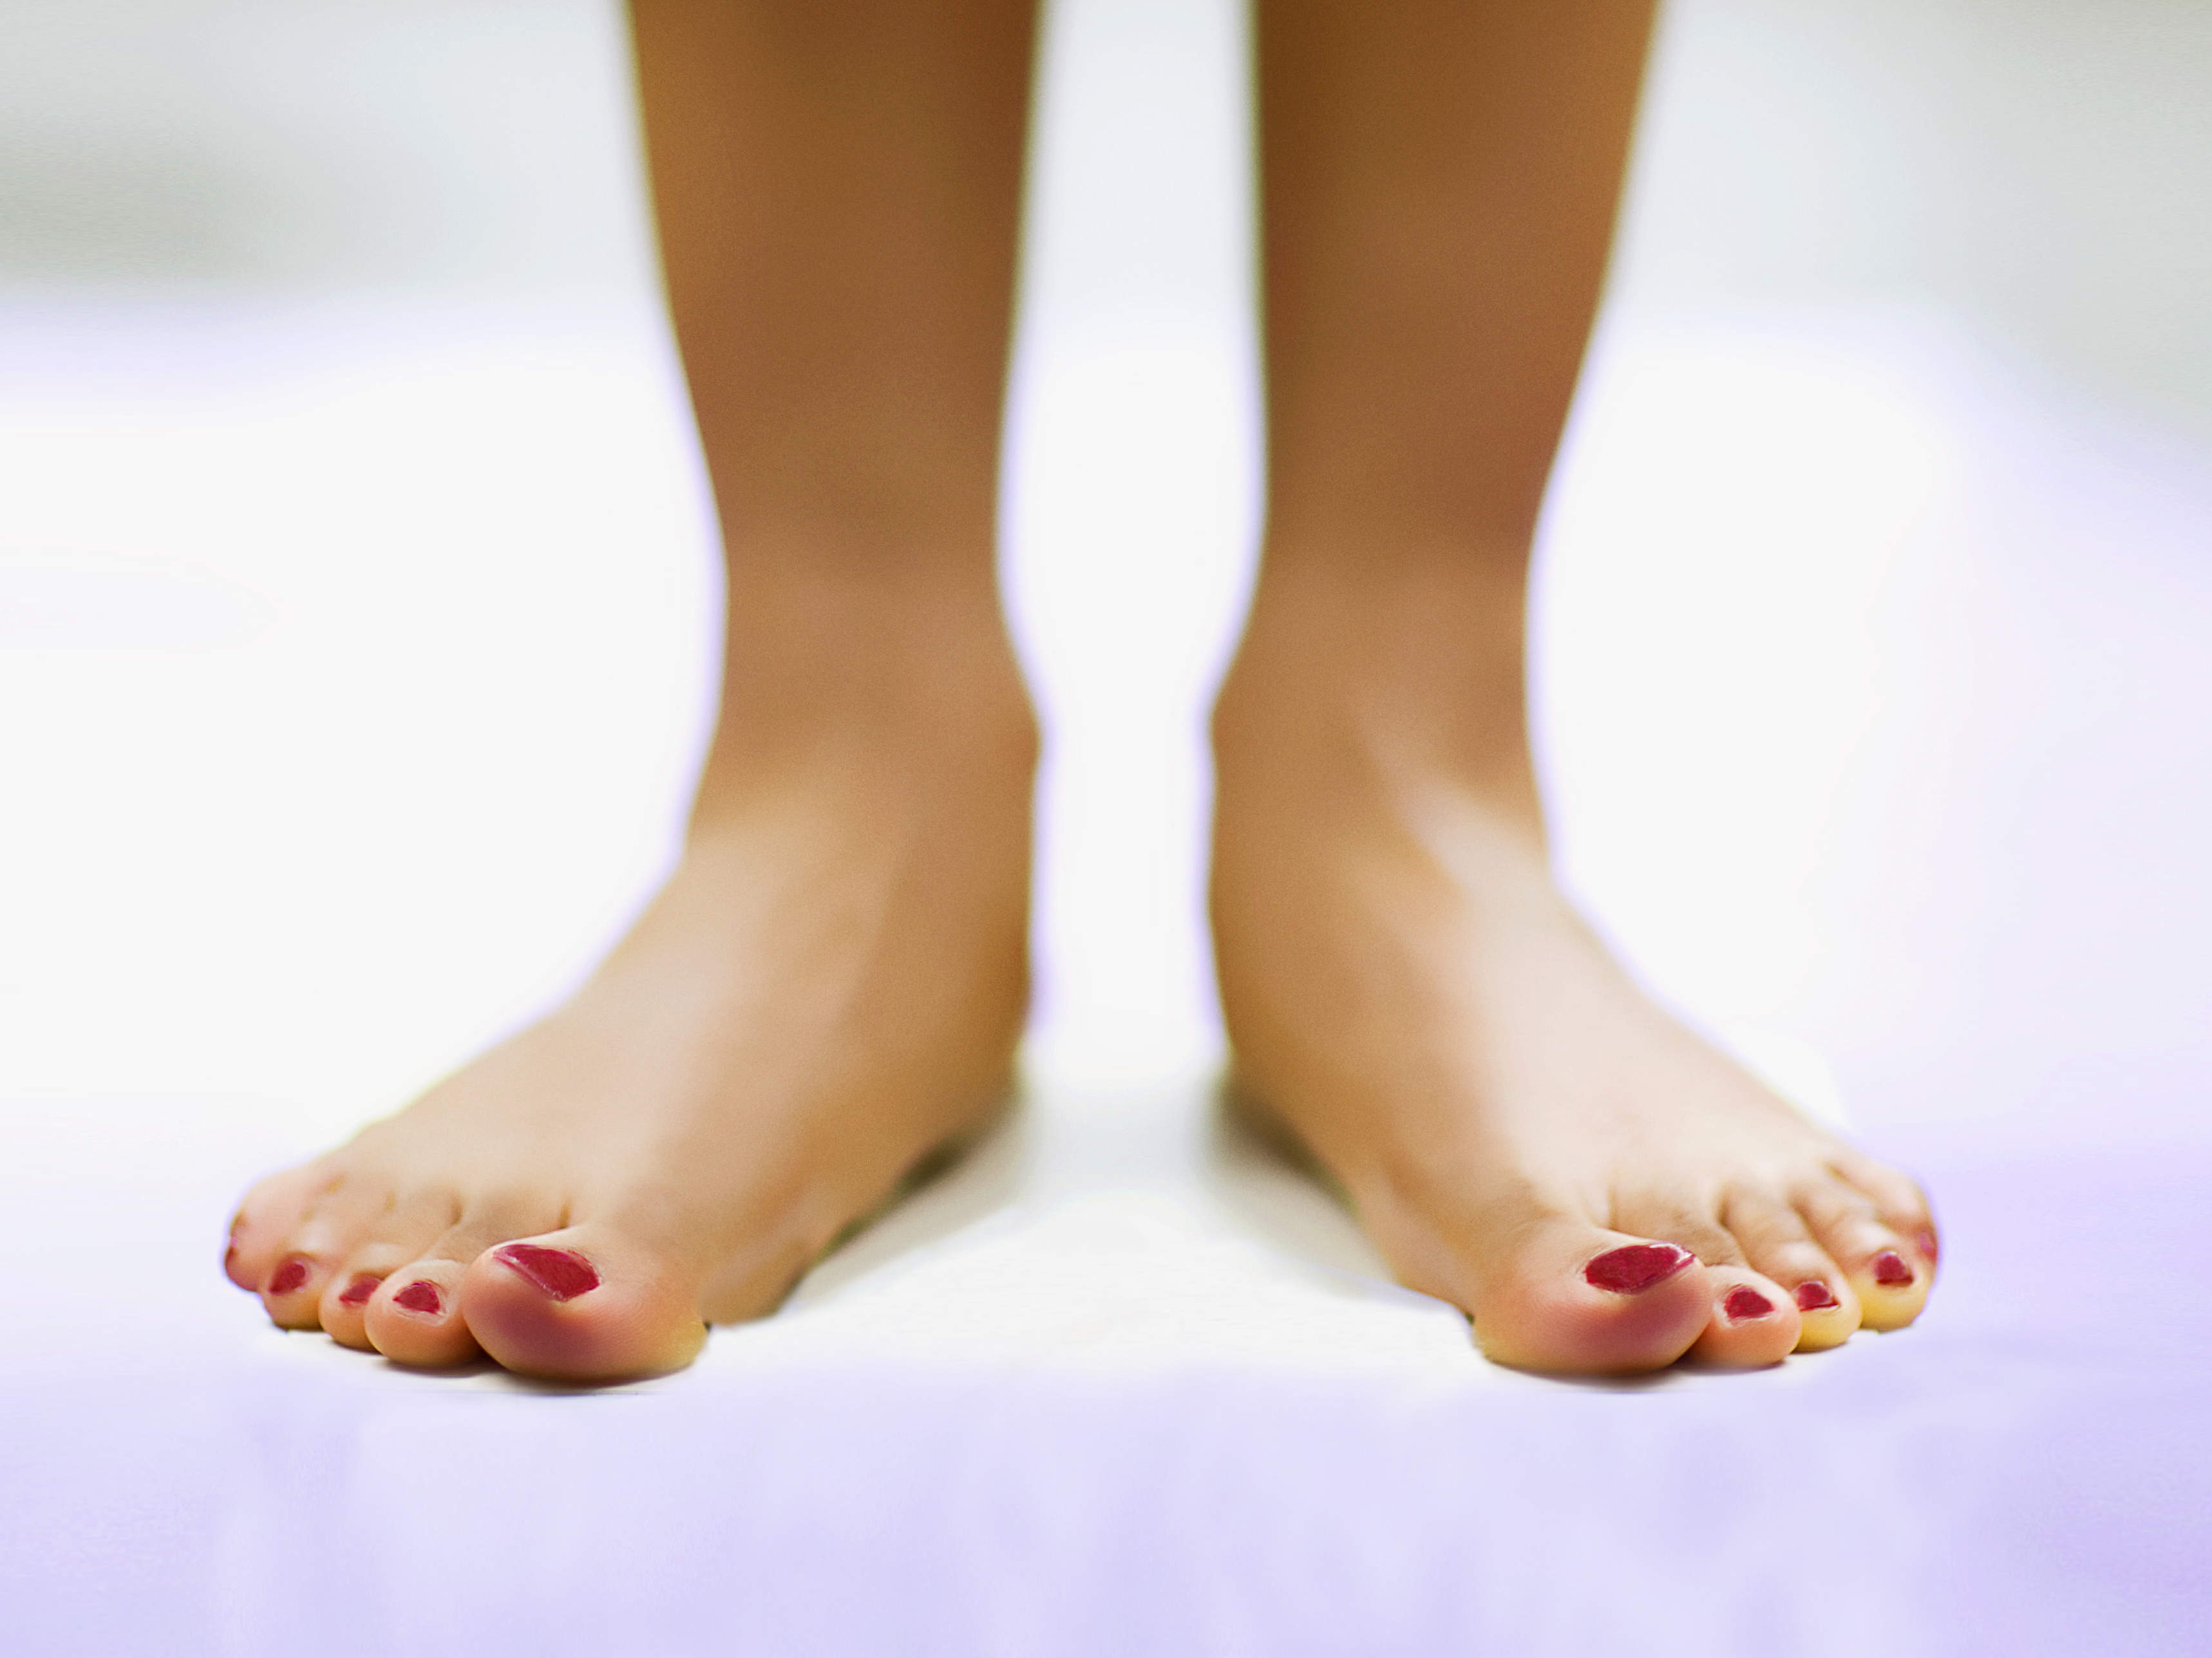 Why do my feet feel cold and what should I do about it